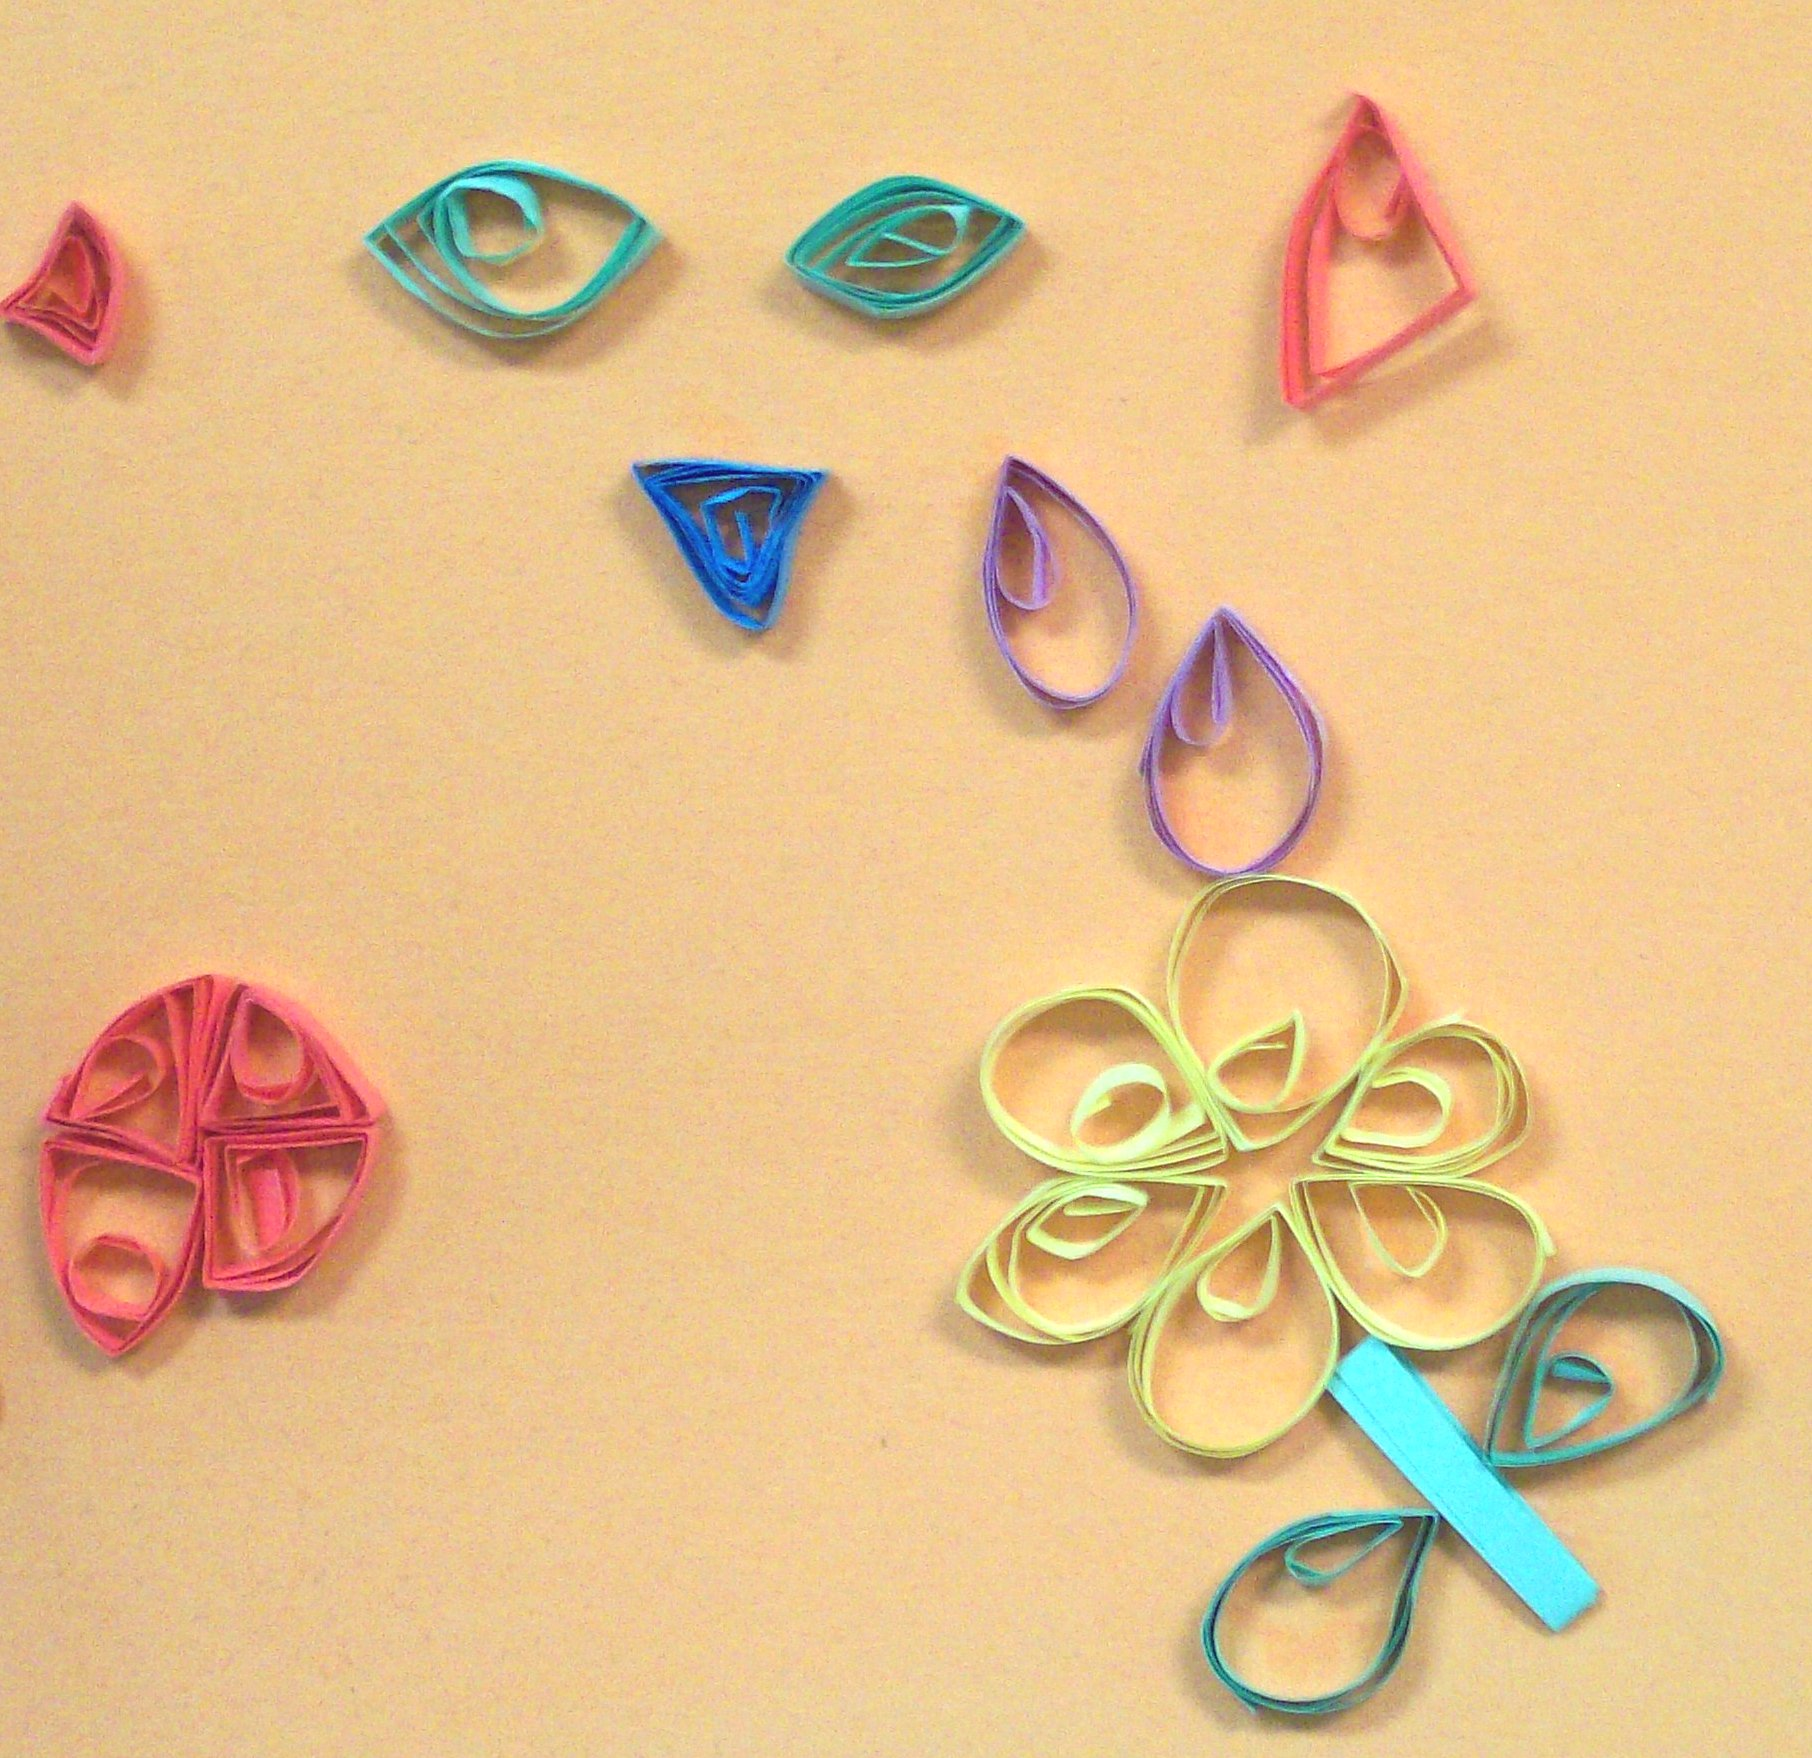 Quilled art paper quilling and other crafts - Paper quilling ideas for kids ...